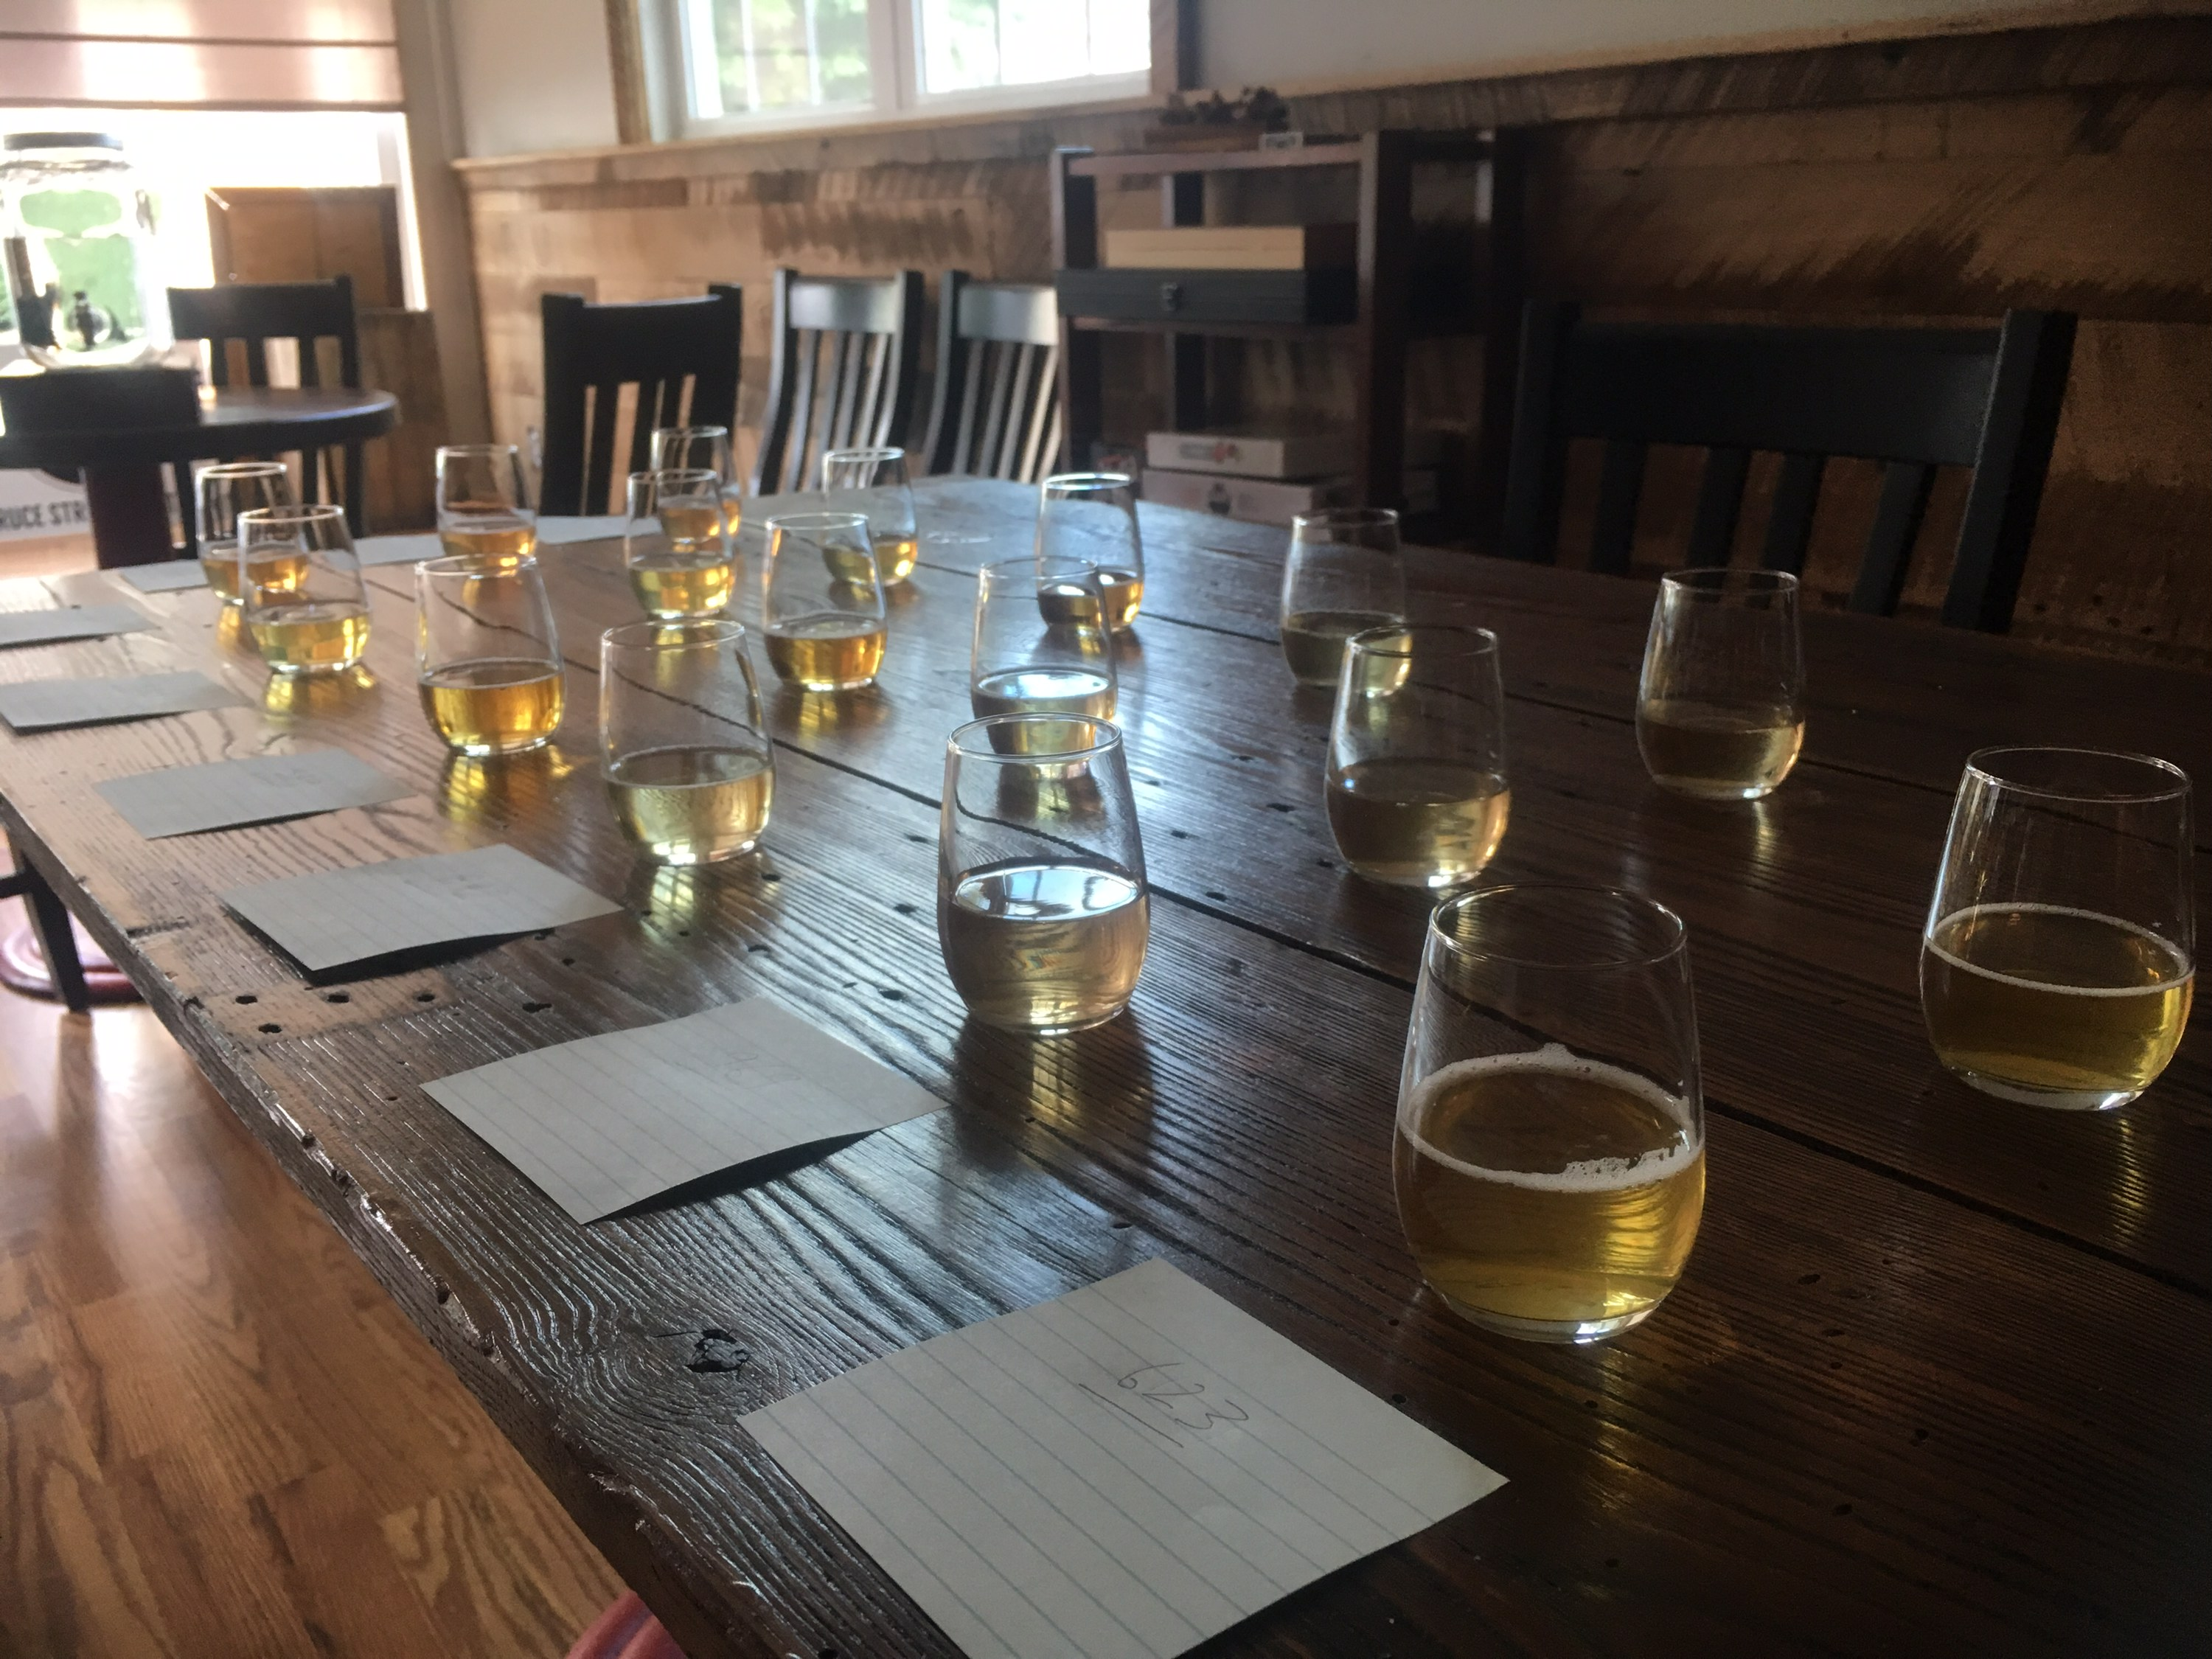 glass tumblers of cider lined up on a rough-hewn wood banquet table at a cider competition